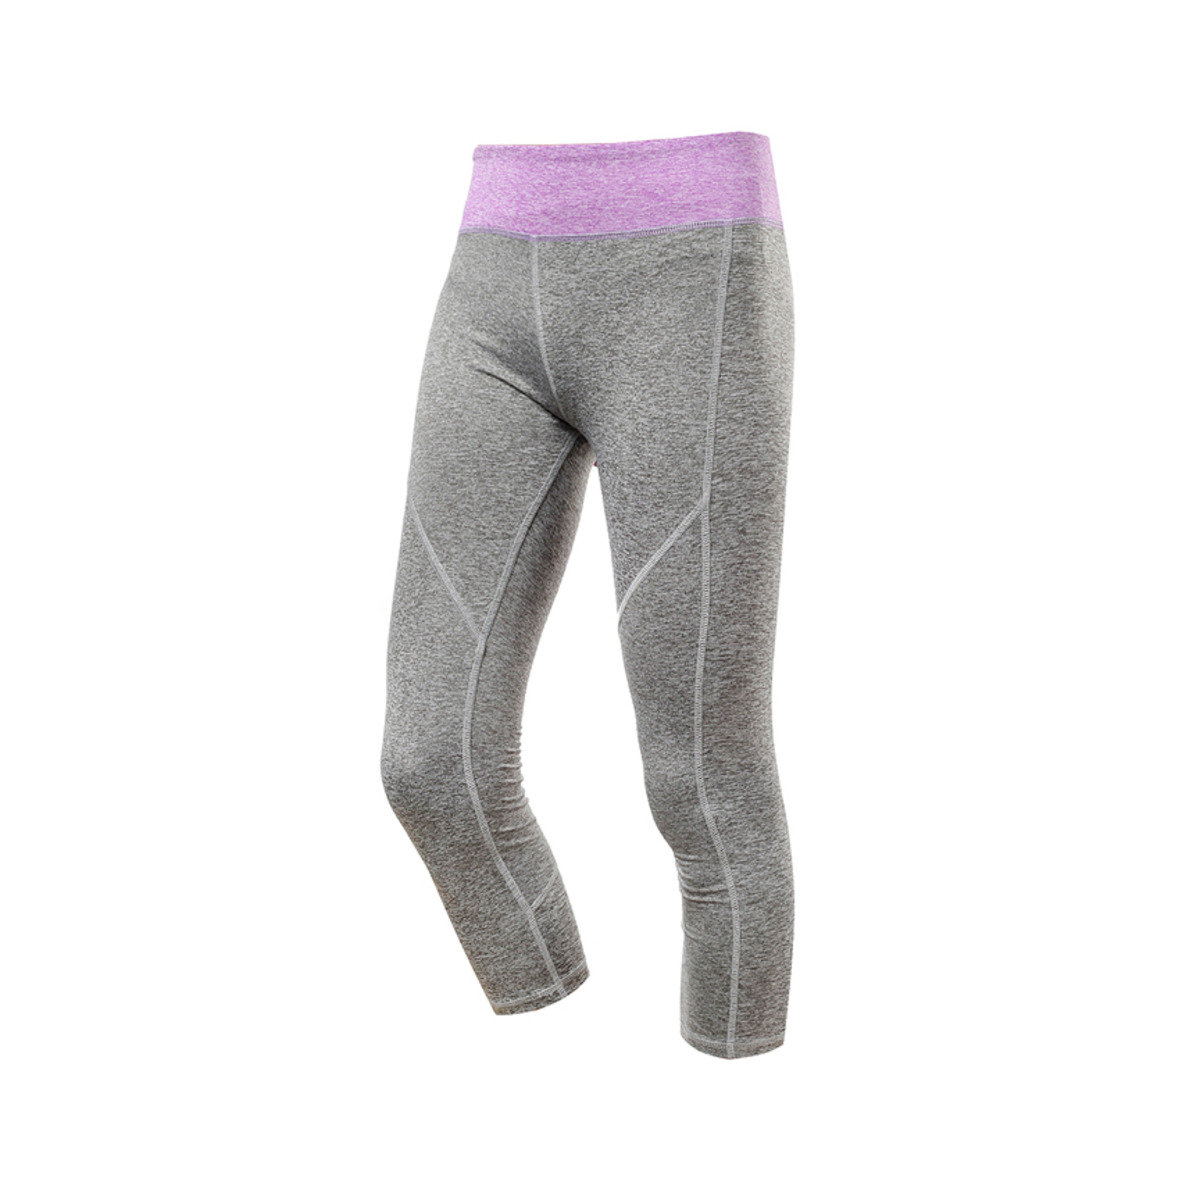 Quick Dry Fit Yoga Running Active 3/4 Sports Pants Leggings Capris